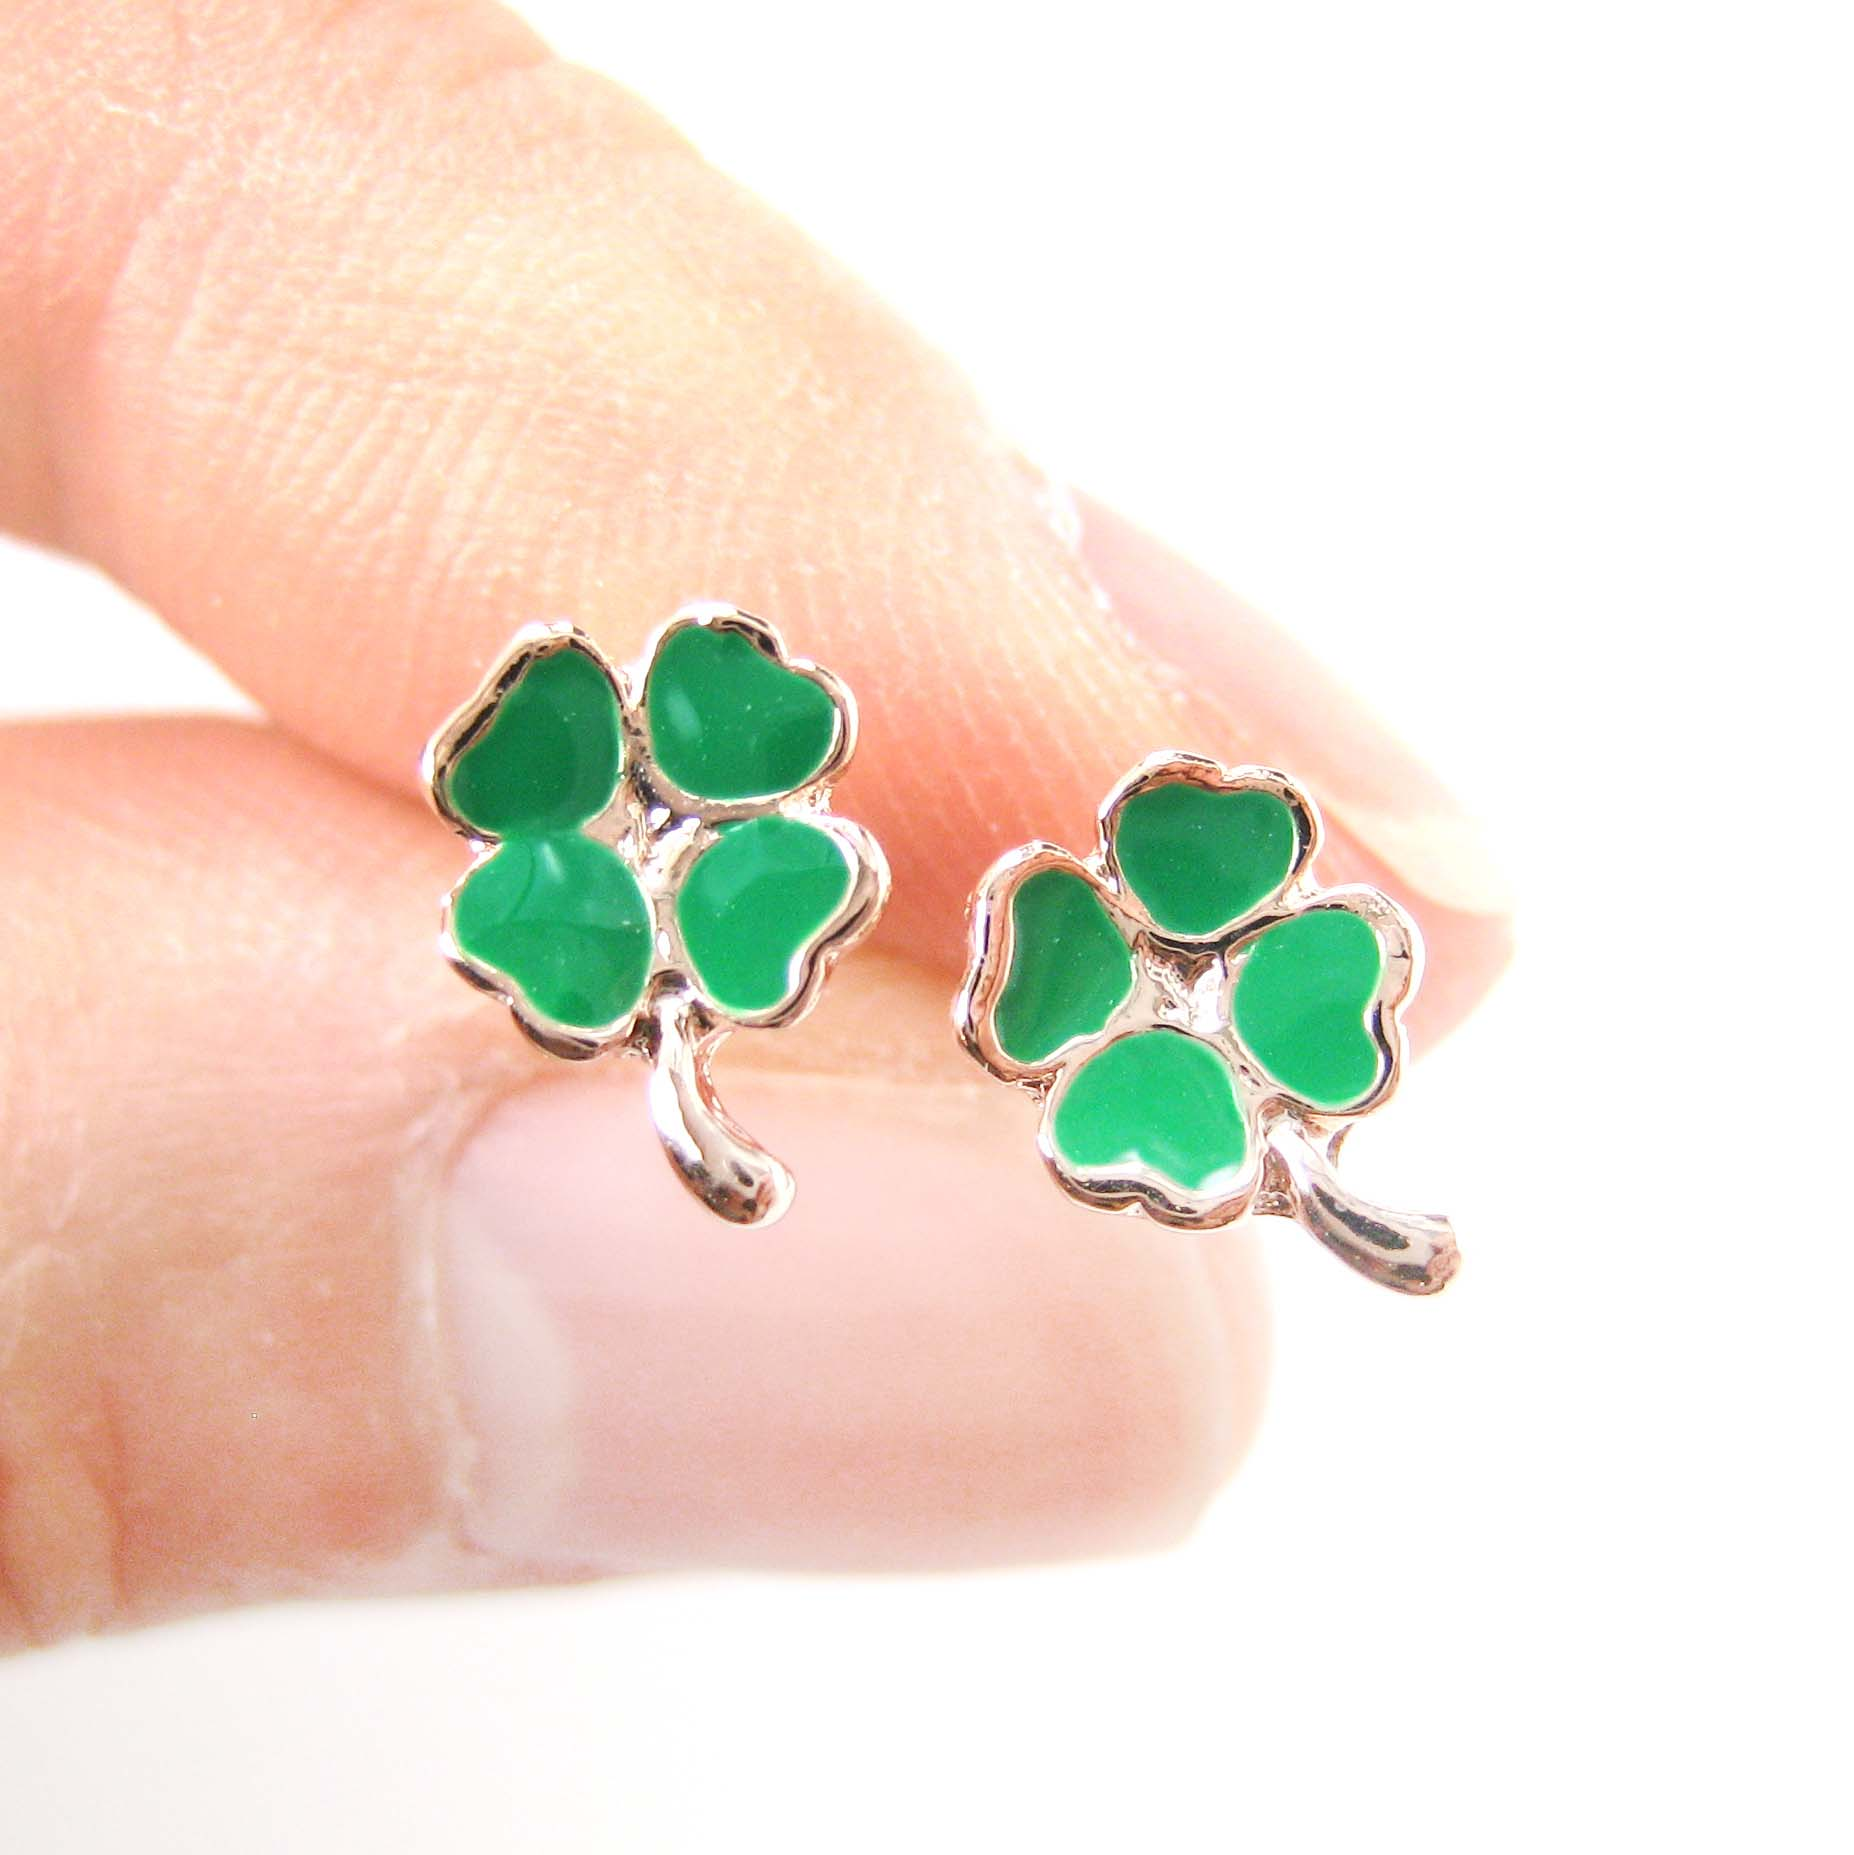 ac0ce42c5 Small Four Leaf Clover Shaped Stud Earrings In Green And Rose Gold ...